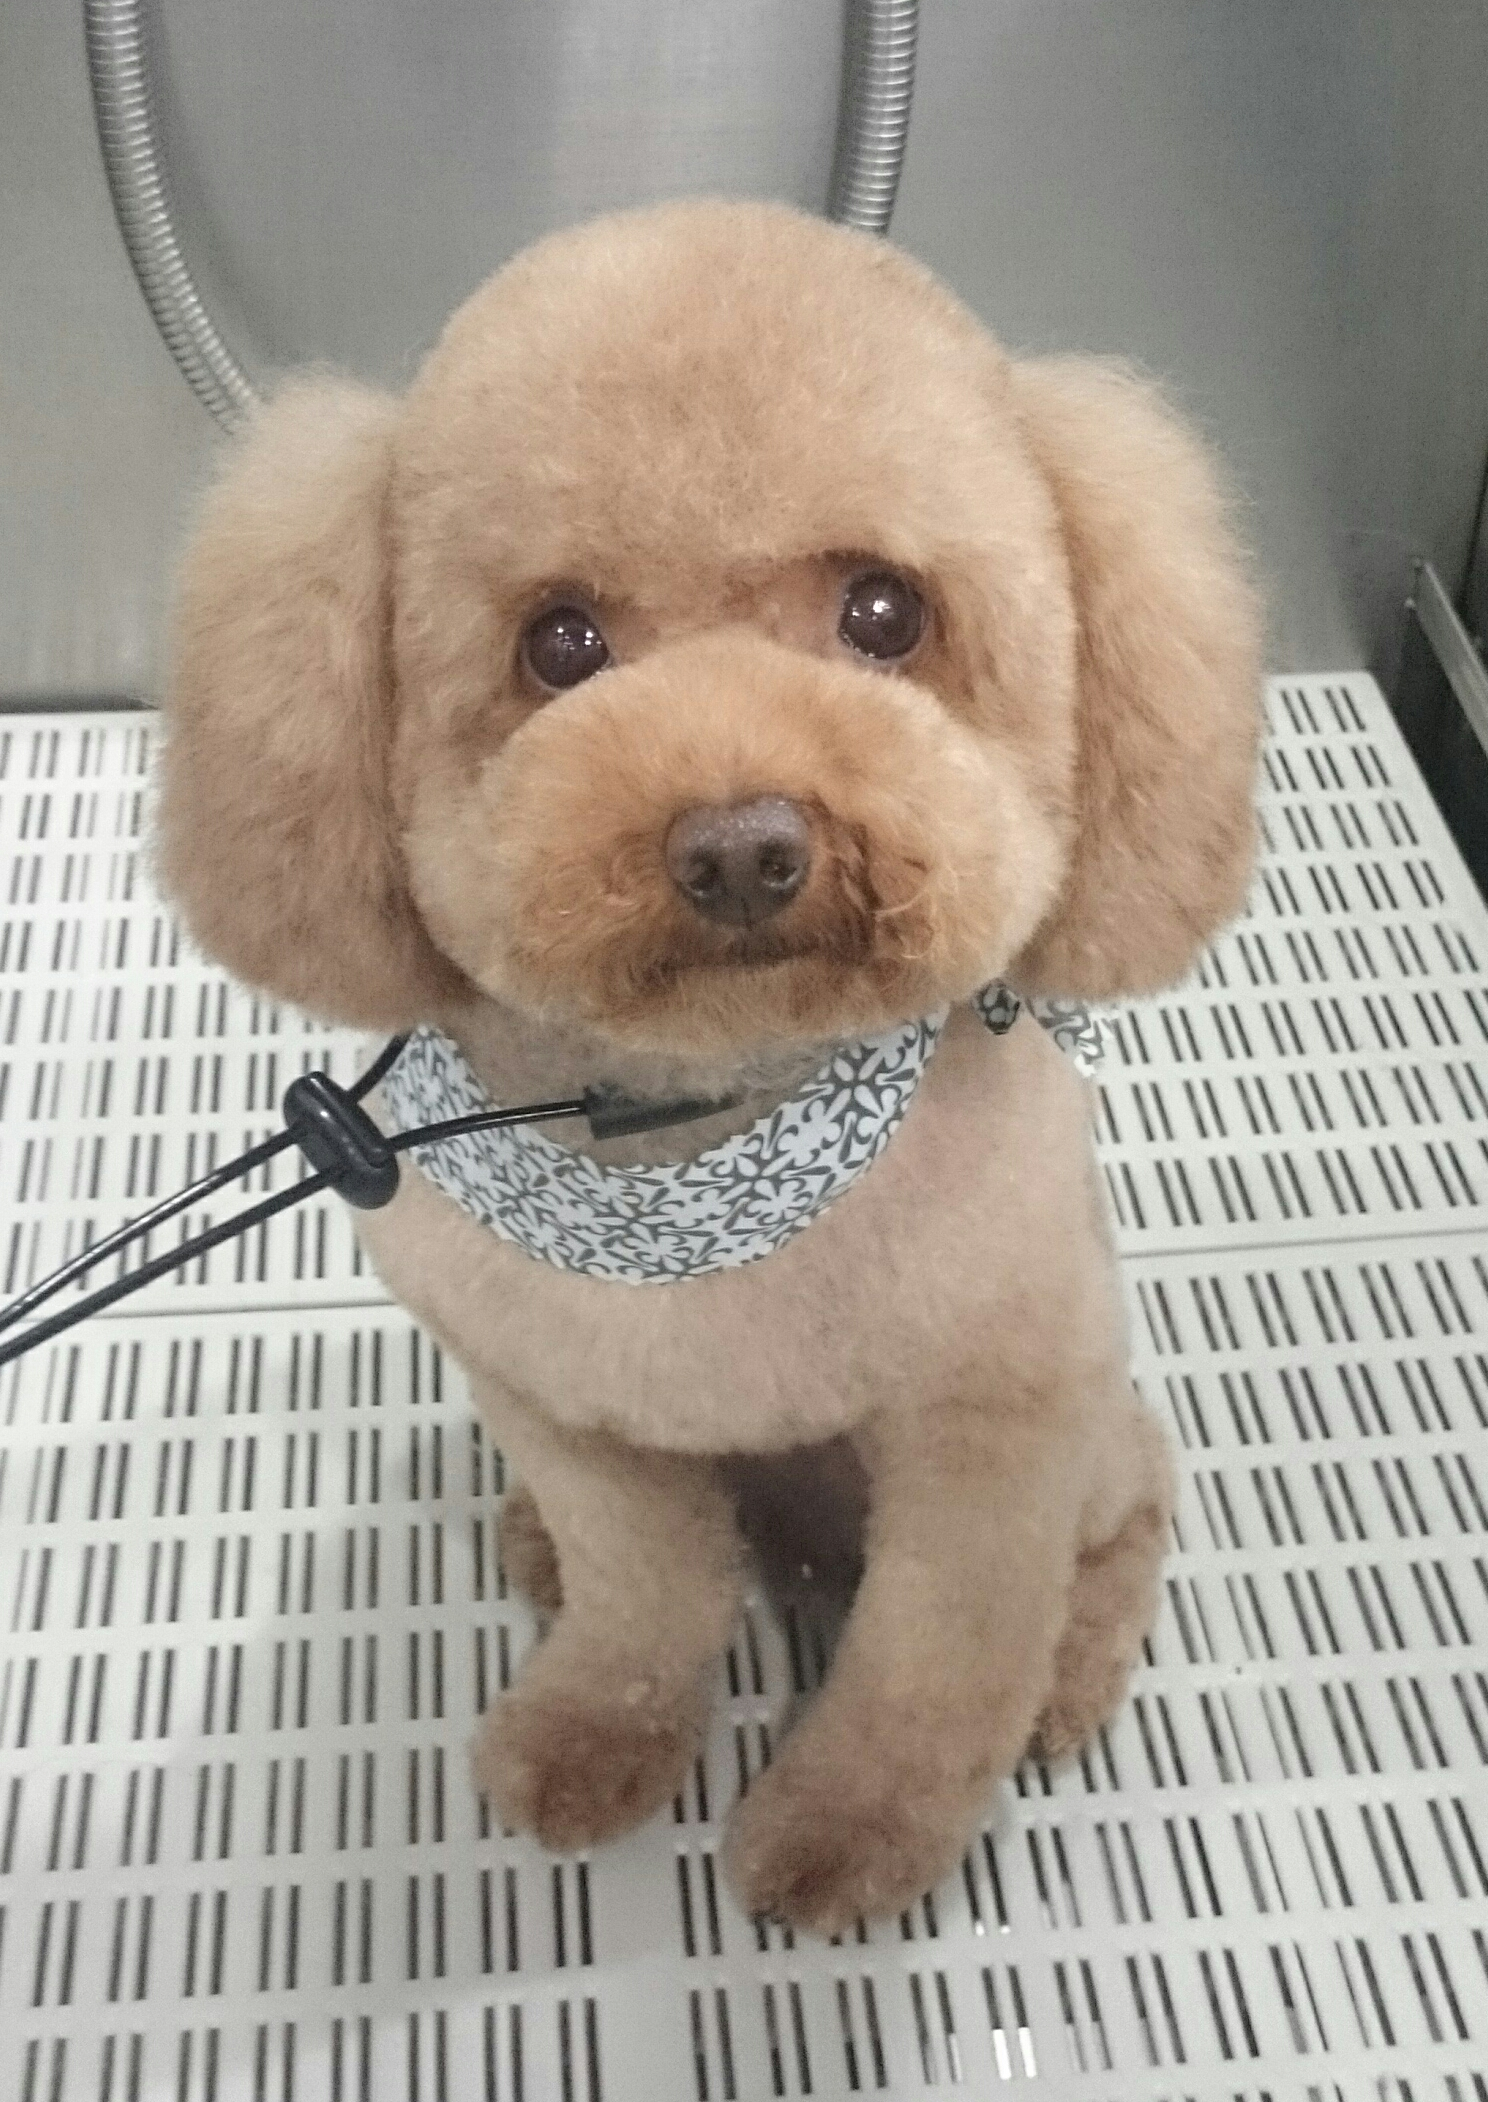 Cozy Puffy Round Ears Poodle Dog Groomer New Westminster New Vancouver Teddy Bear Cut Aussie Teddy Bear Cut On Shih Tzu Teddy Bear bark post Teddy Bear Cut